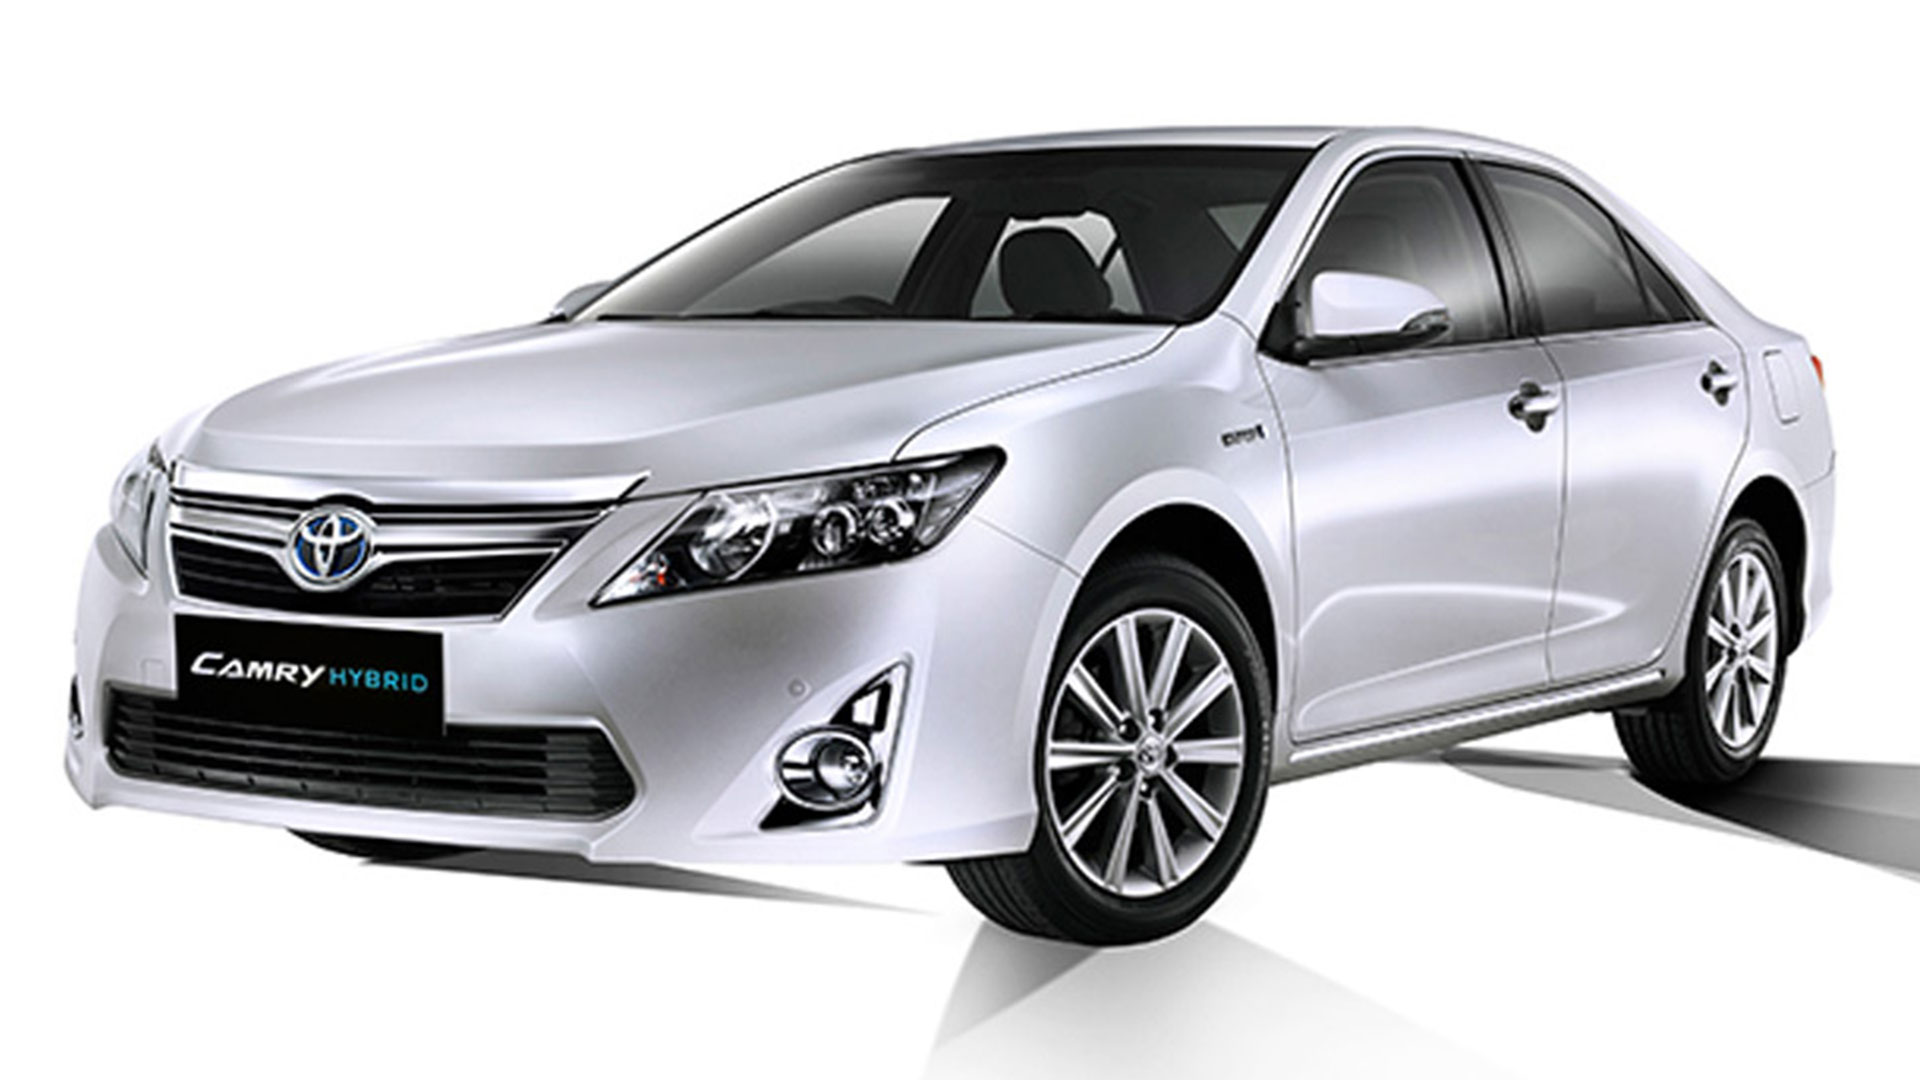 Charming Toyota Camry 2014 #1 Toyota Camry 2014 #1